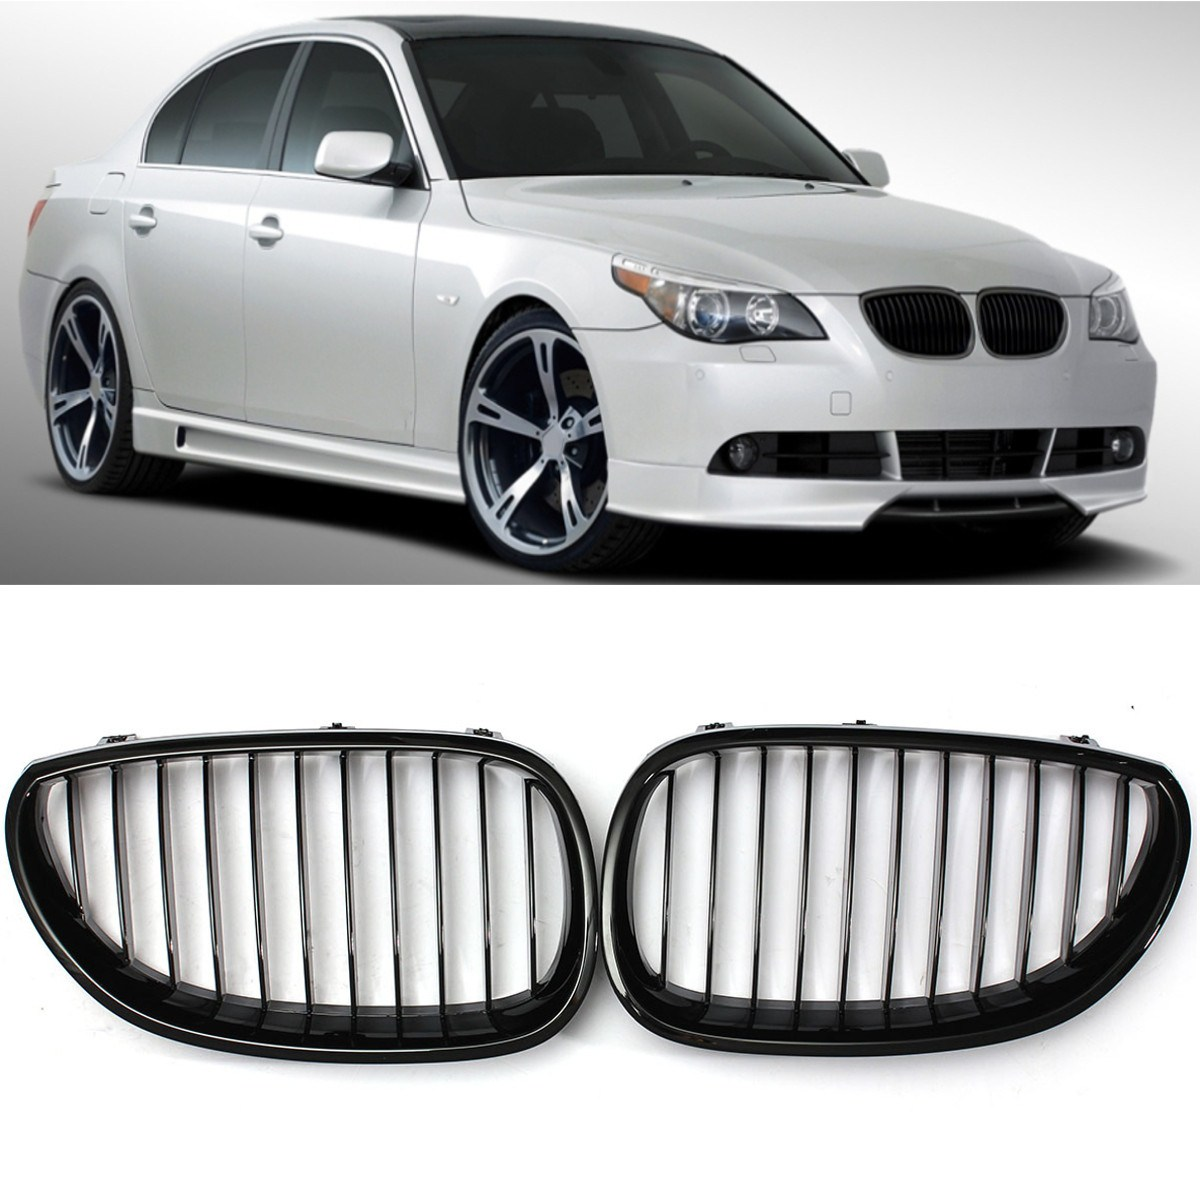 Gloss Black Front Sport Wide Kidney Grille Grill For BMW E60 E61 5 Series M5 03-10 стоимость